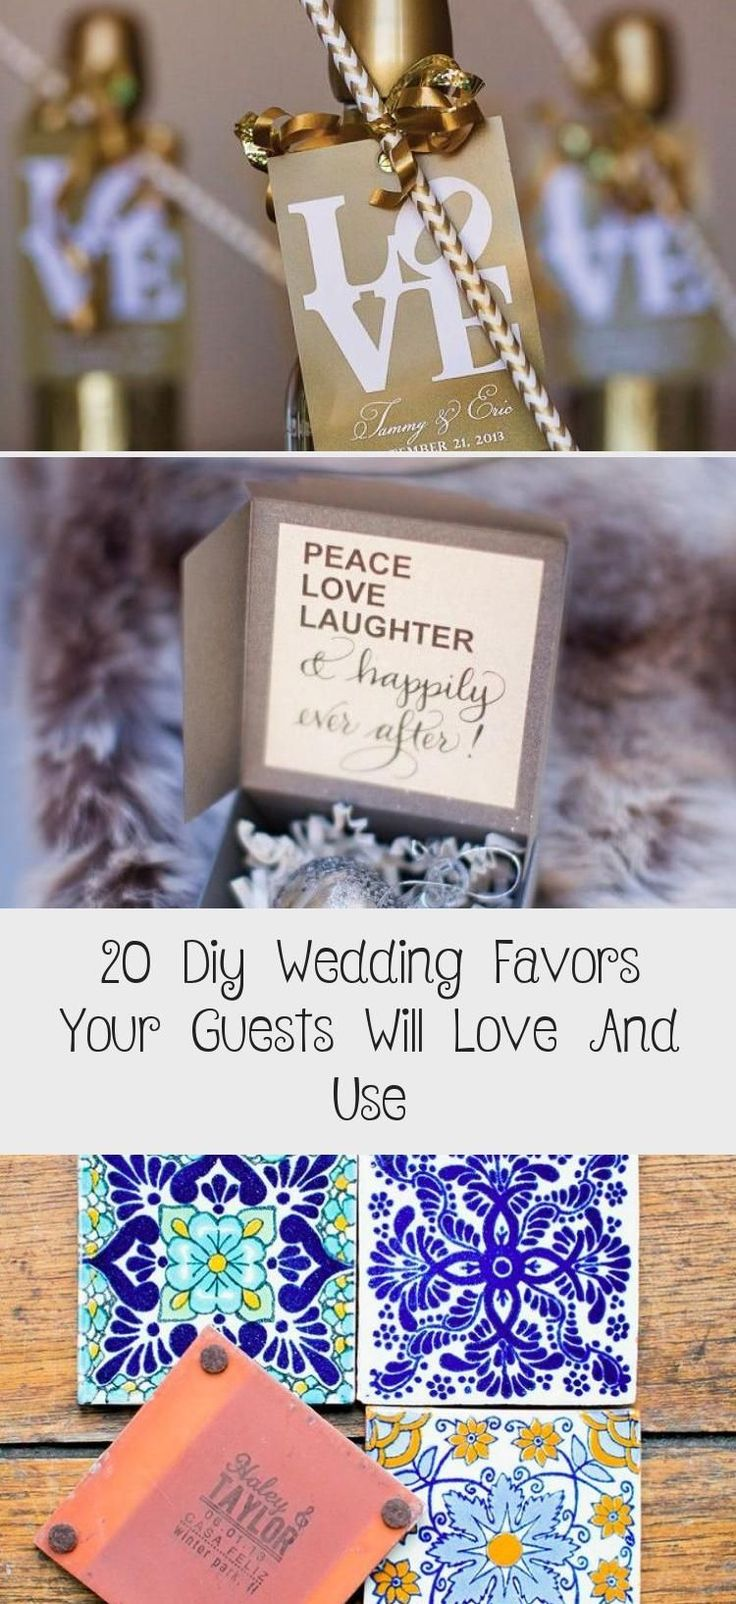 20 Diy Wedding Favors Your Guests Will Love And Use - Wedding :  Give out seeds ...#diy #favors #give #guests #love #seeds #wedding